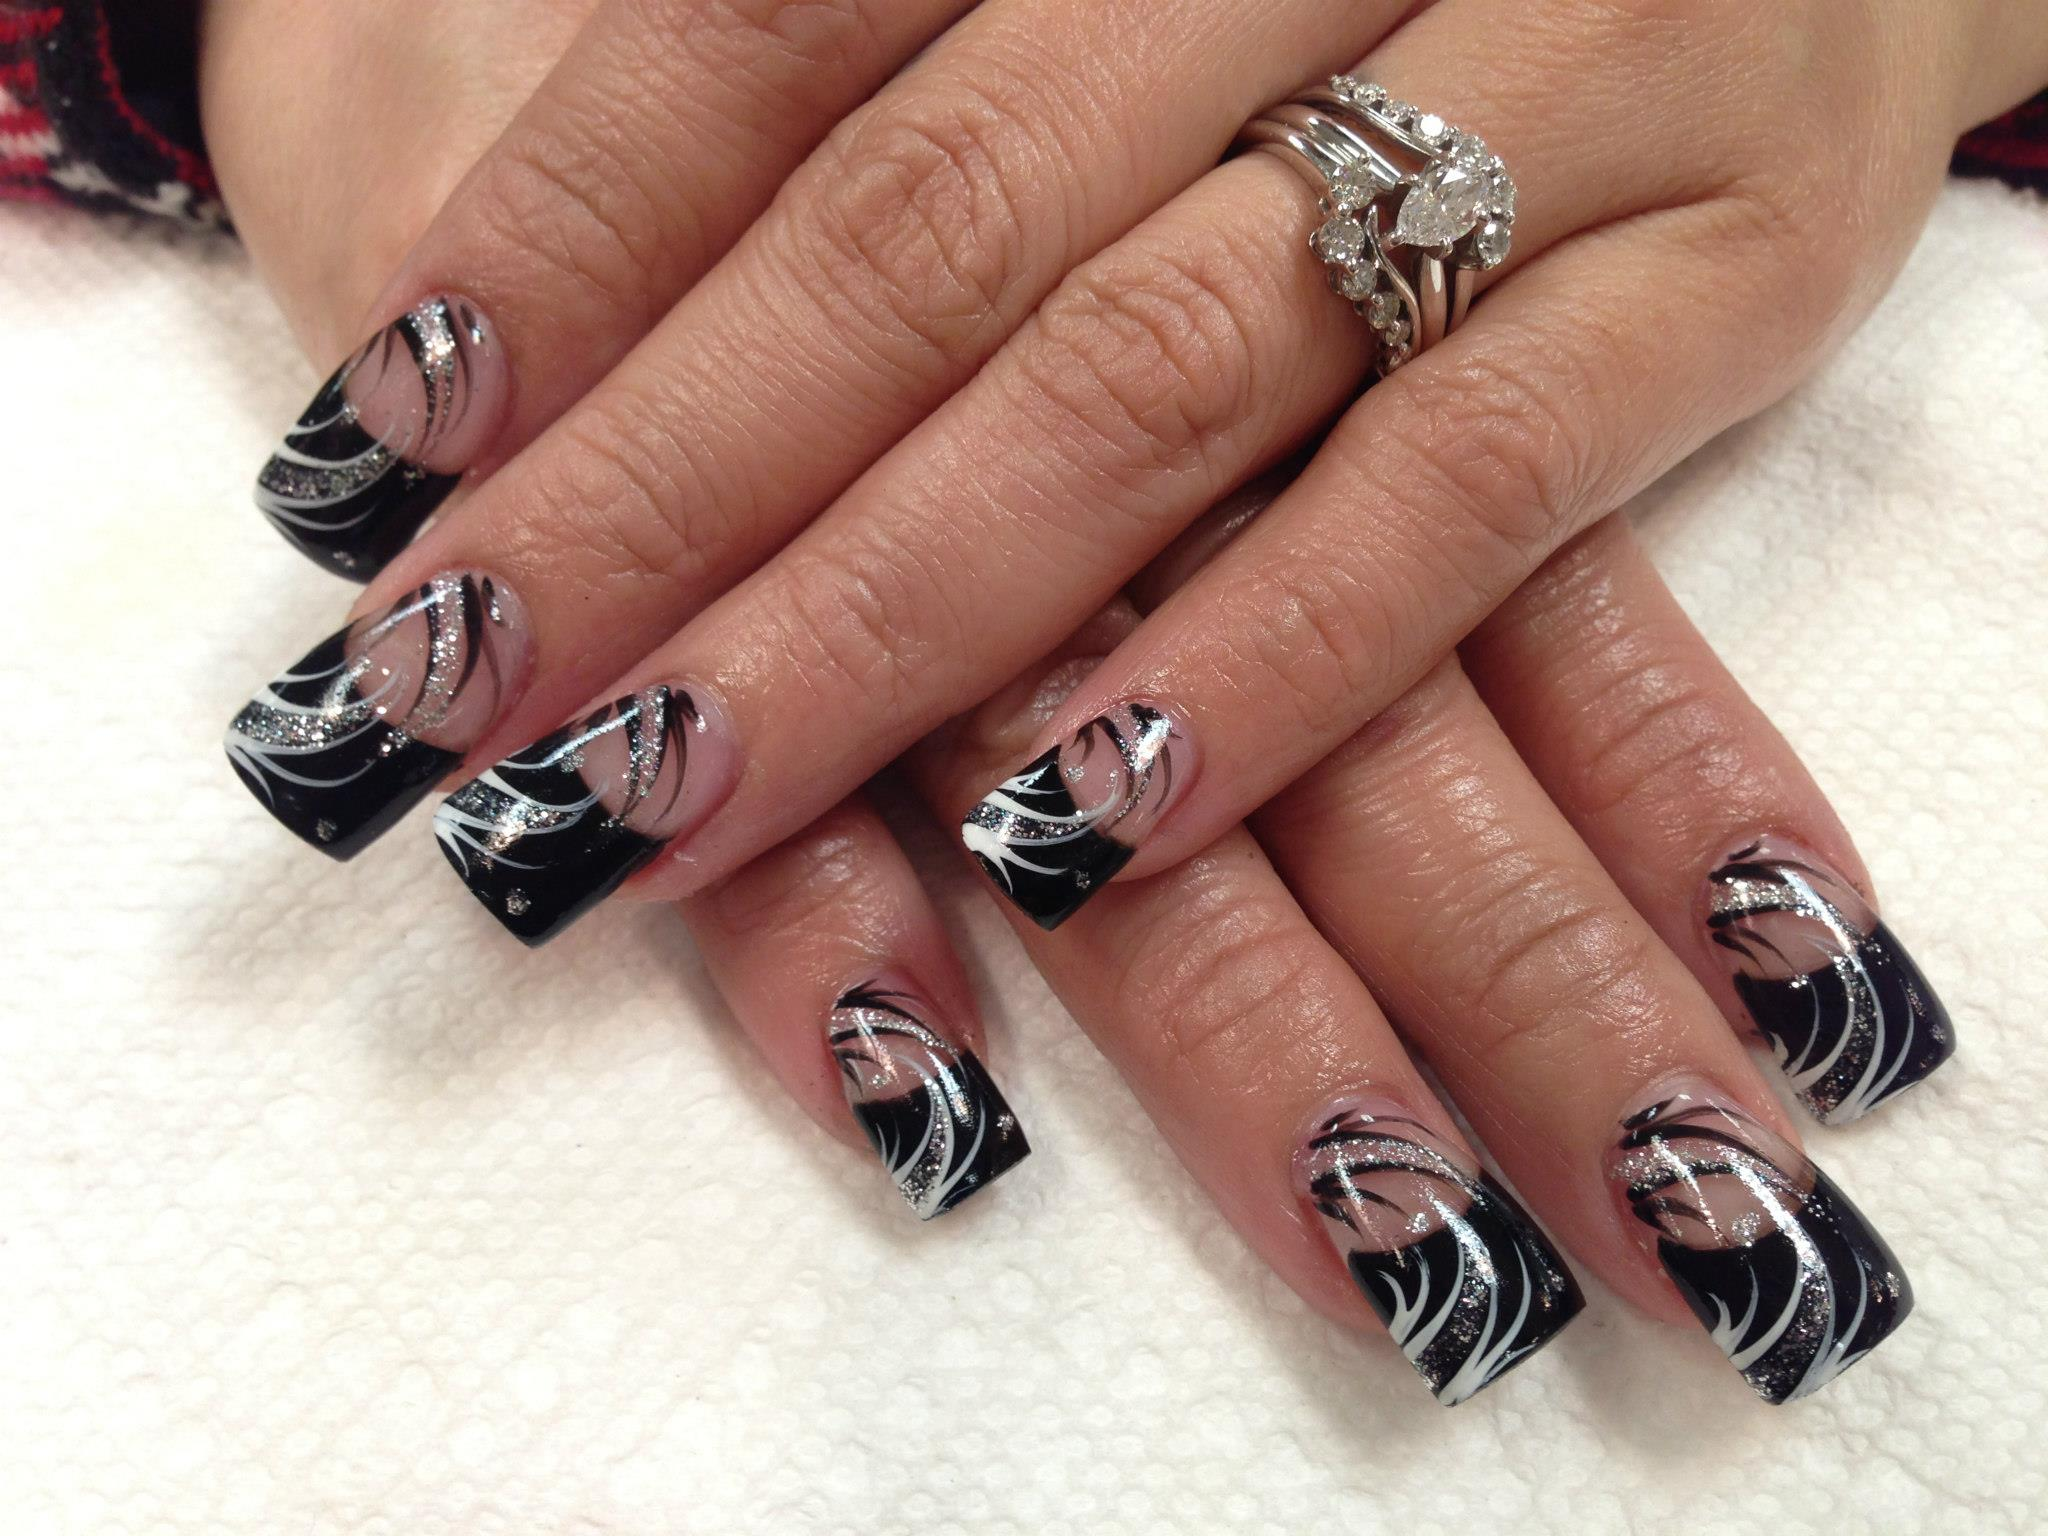 1920s flapper style nail art designs by top nails clarksville tn 1920s flapper style nail art designs by top nails clarksville tn prinsesfo Images